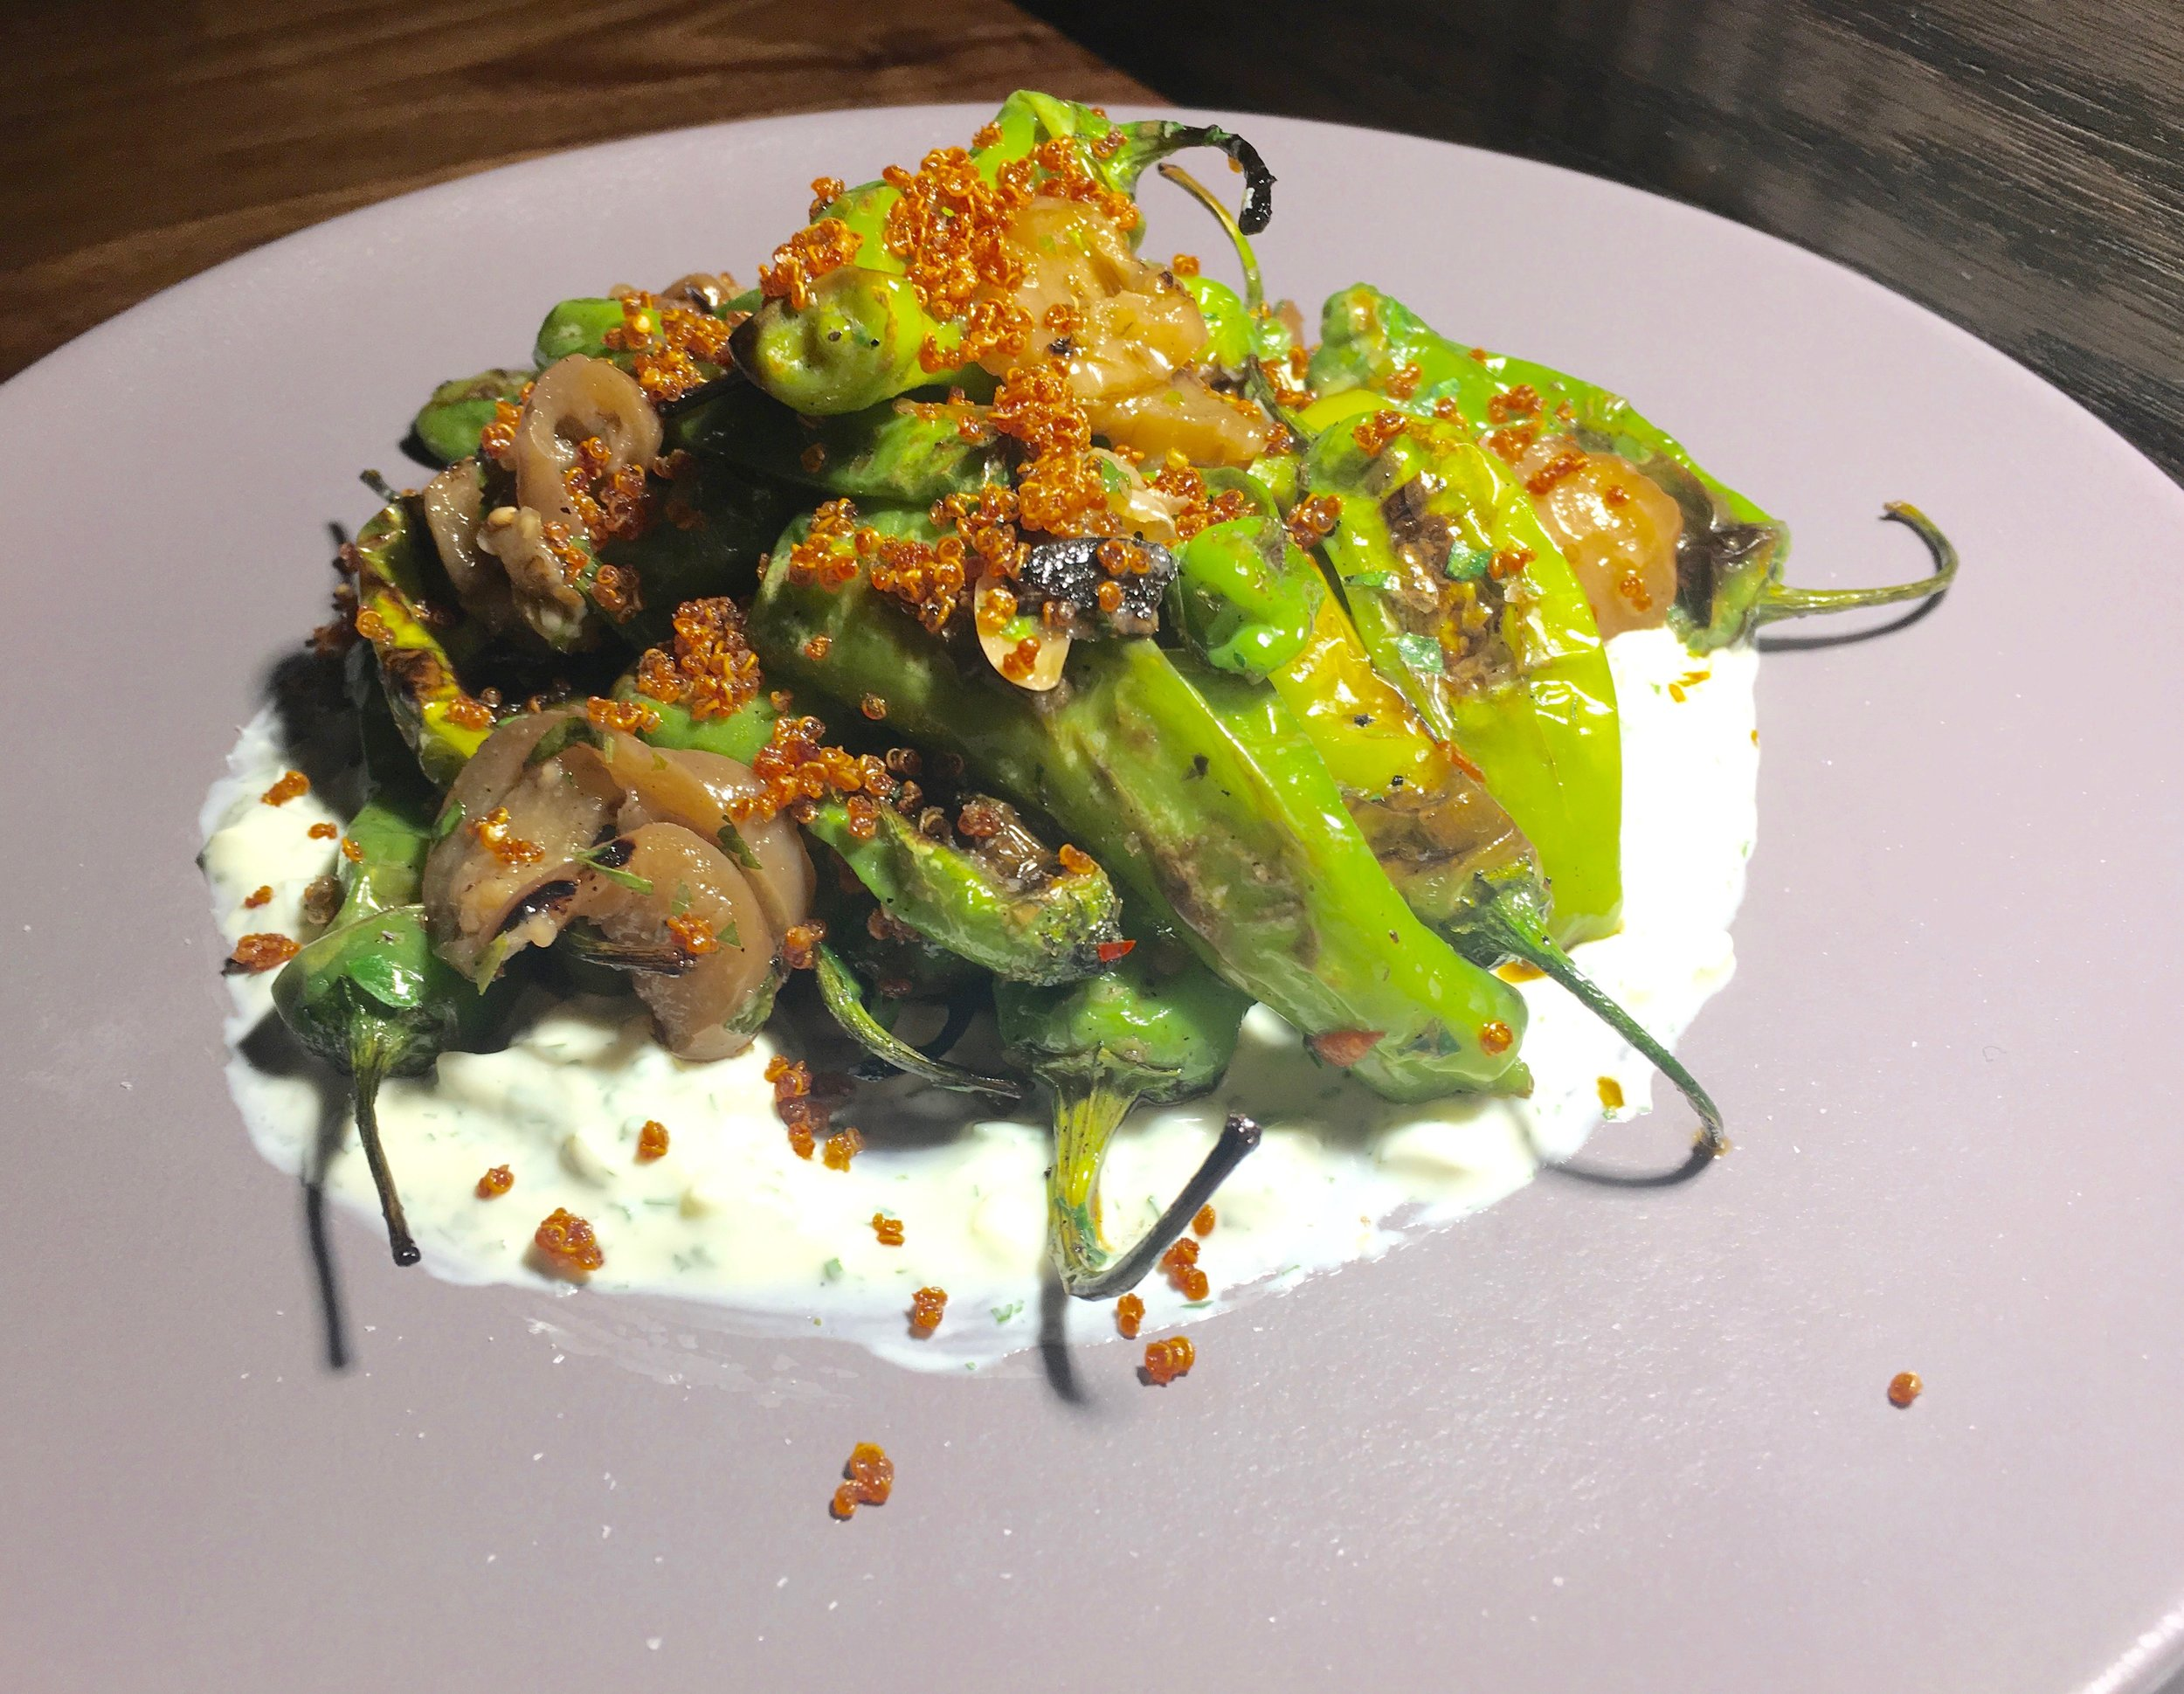 Luke's mostly uses its smokebox to add a dimension of smokiness to mussels, oysters and fish for dip, but we went vegetarian -- and au courant -- with the shishito peppers -- soft and smoky with eggplant and yogurt.